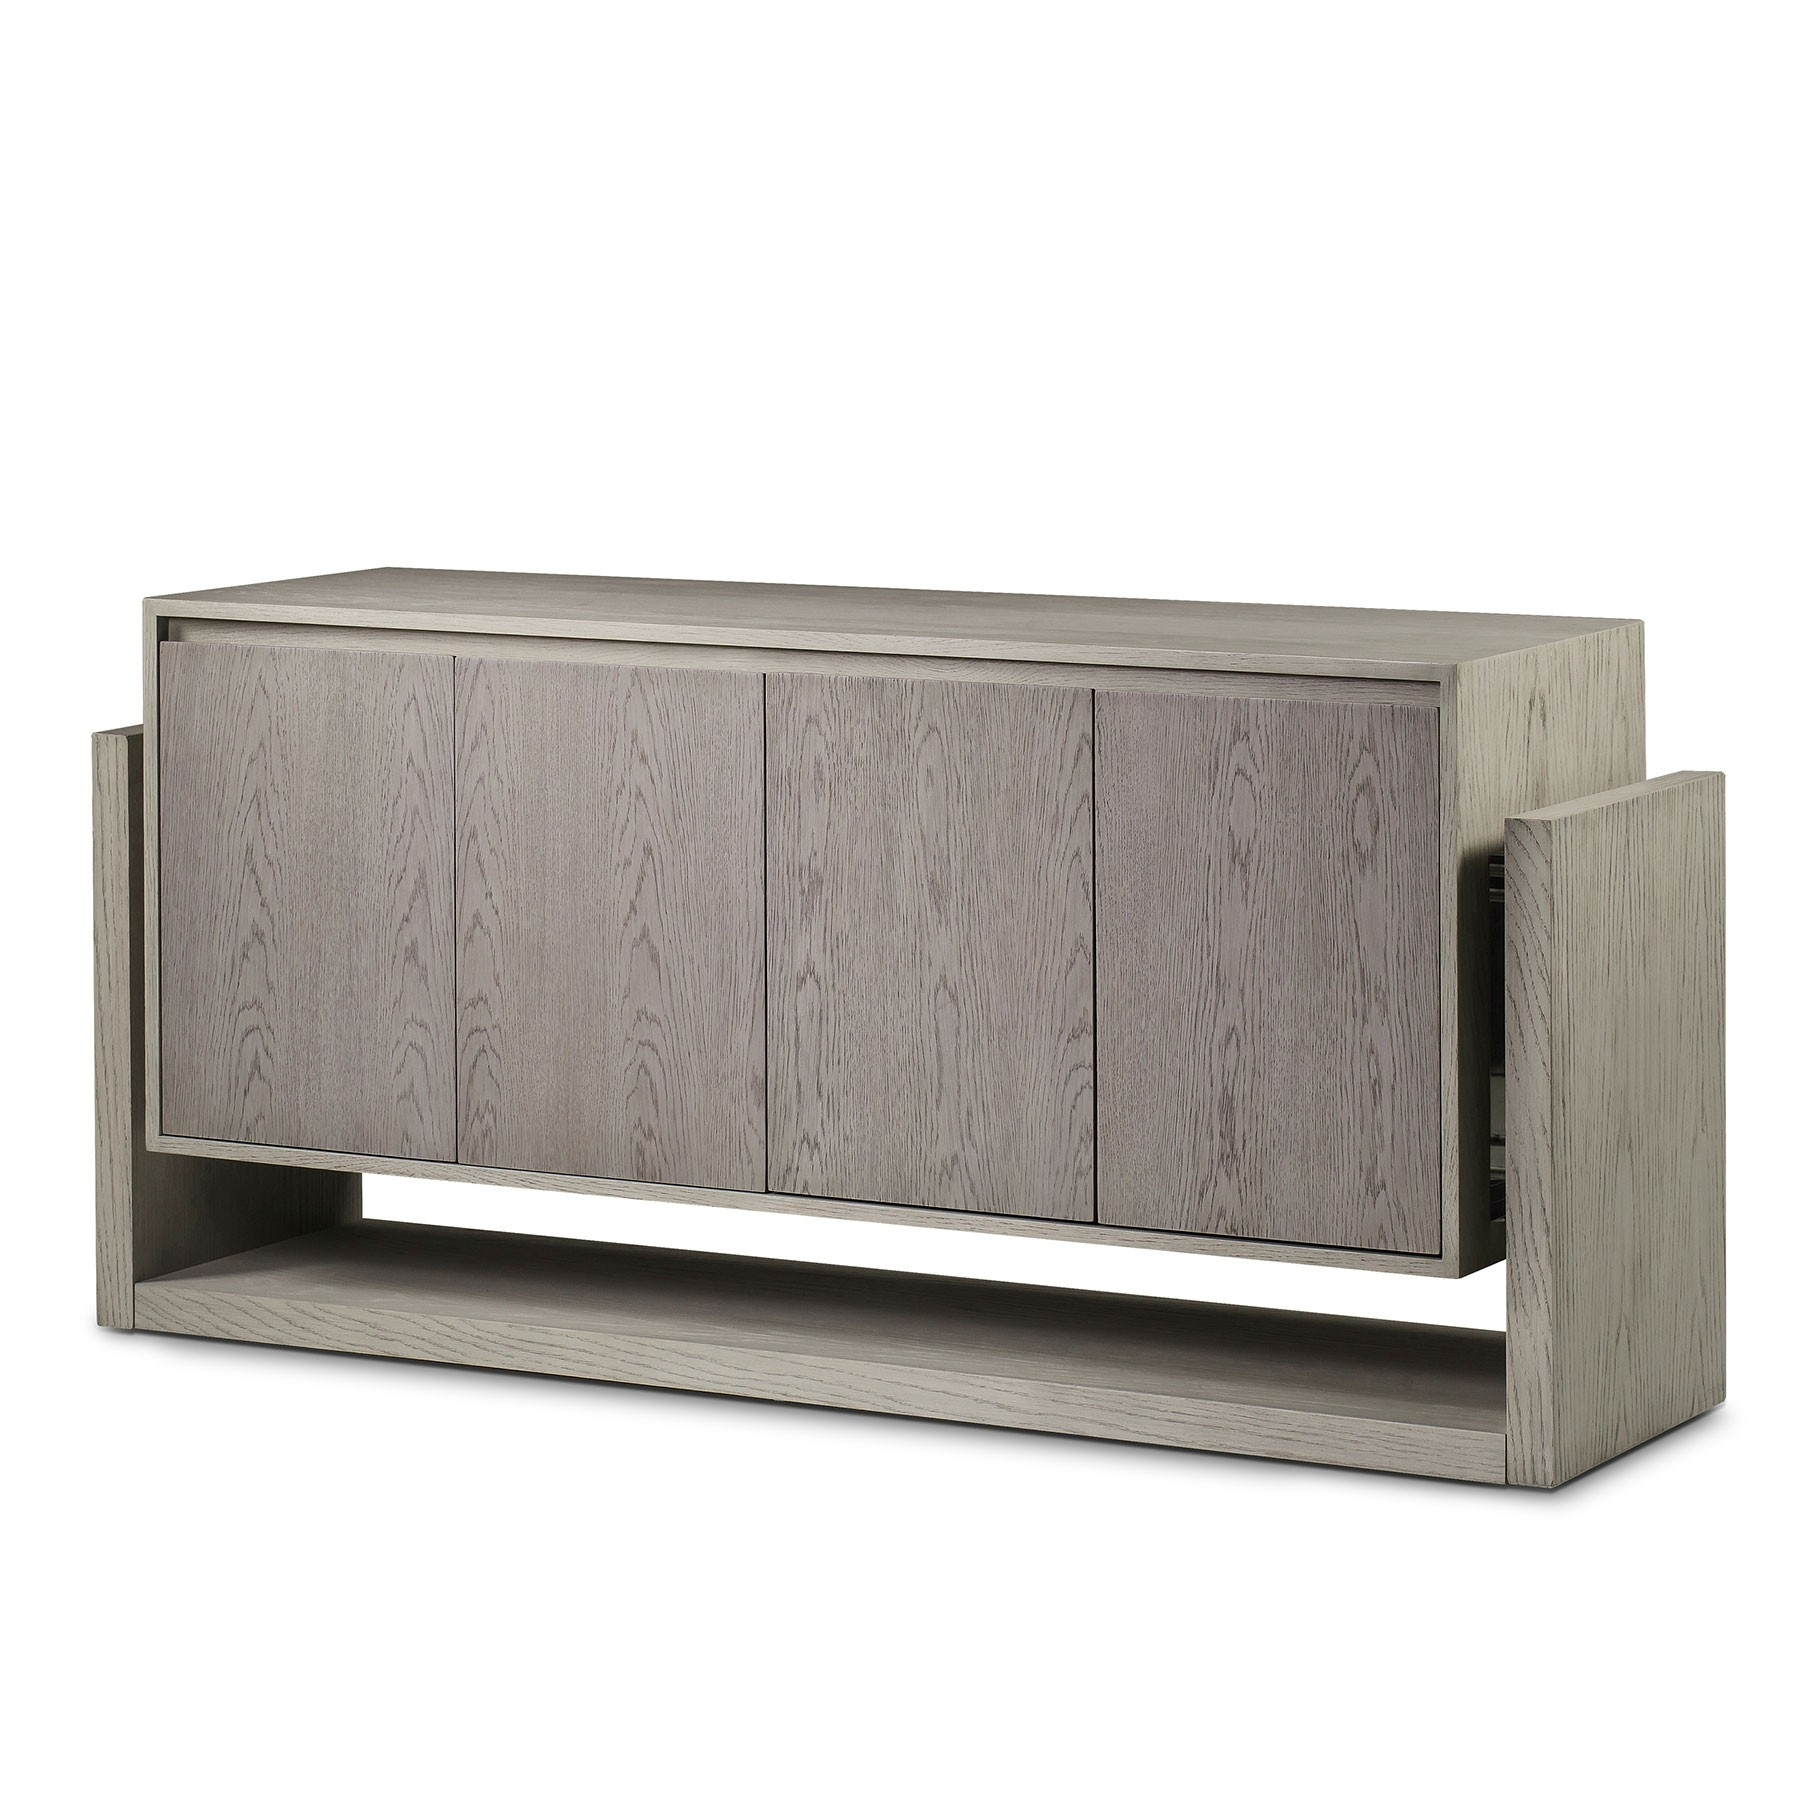 Newman 4 Door Sideboard – Whitewashed   Resource Decor 1404025 With Regard To Newest White Wash 4 Door Sideboards (View 12 of 20)